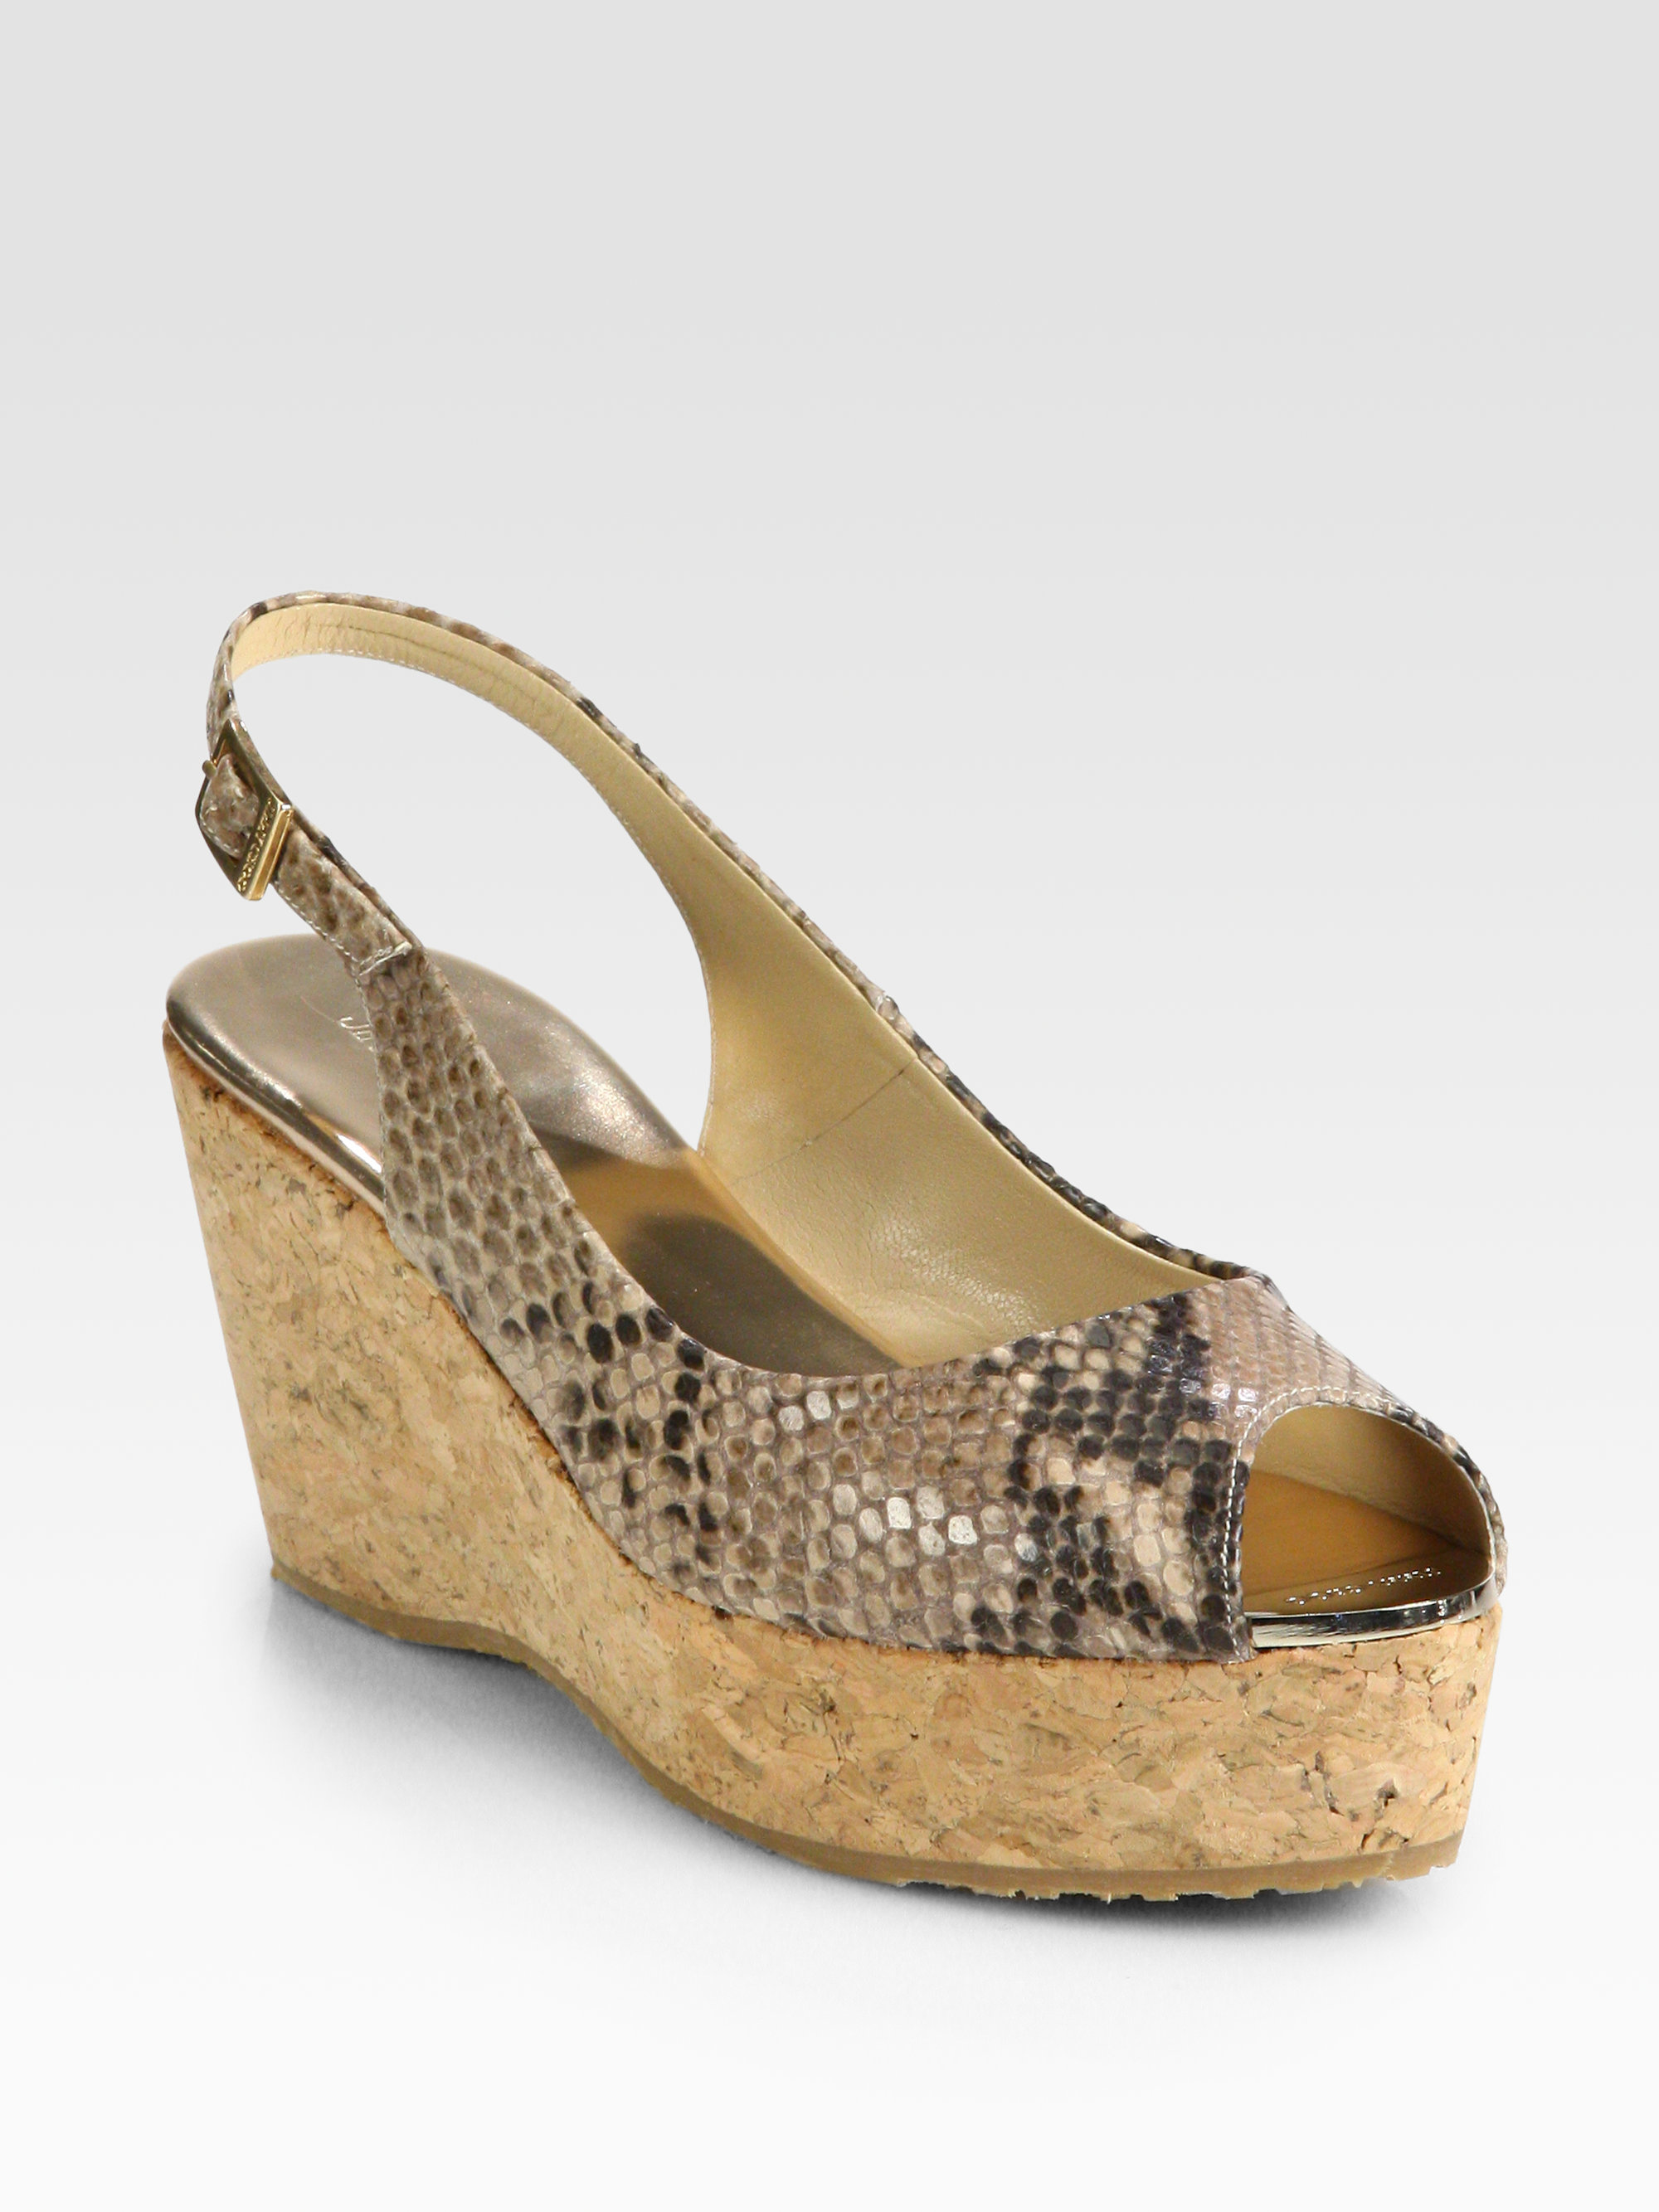 Jimmy Choo Praise Snakeprint Leather Cork Wedge Sandals In